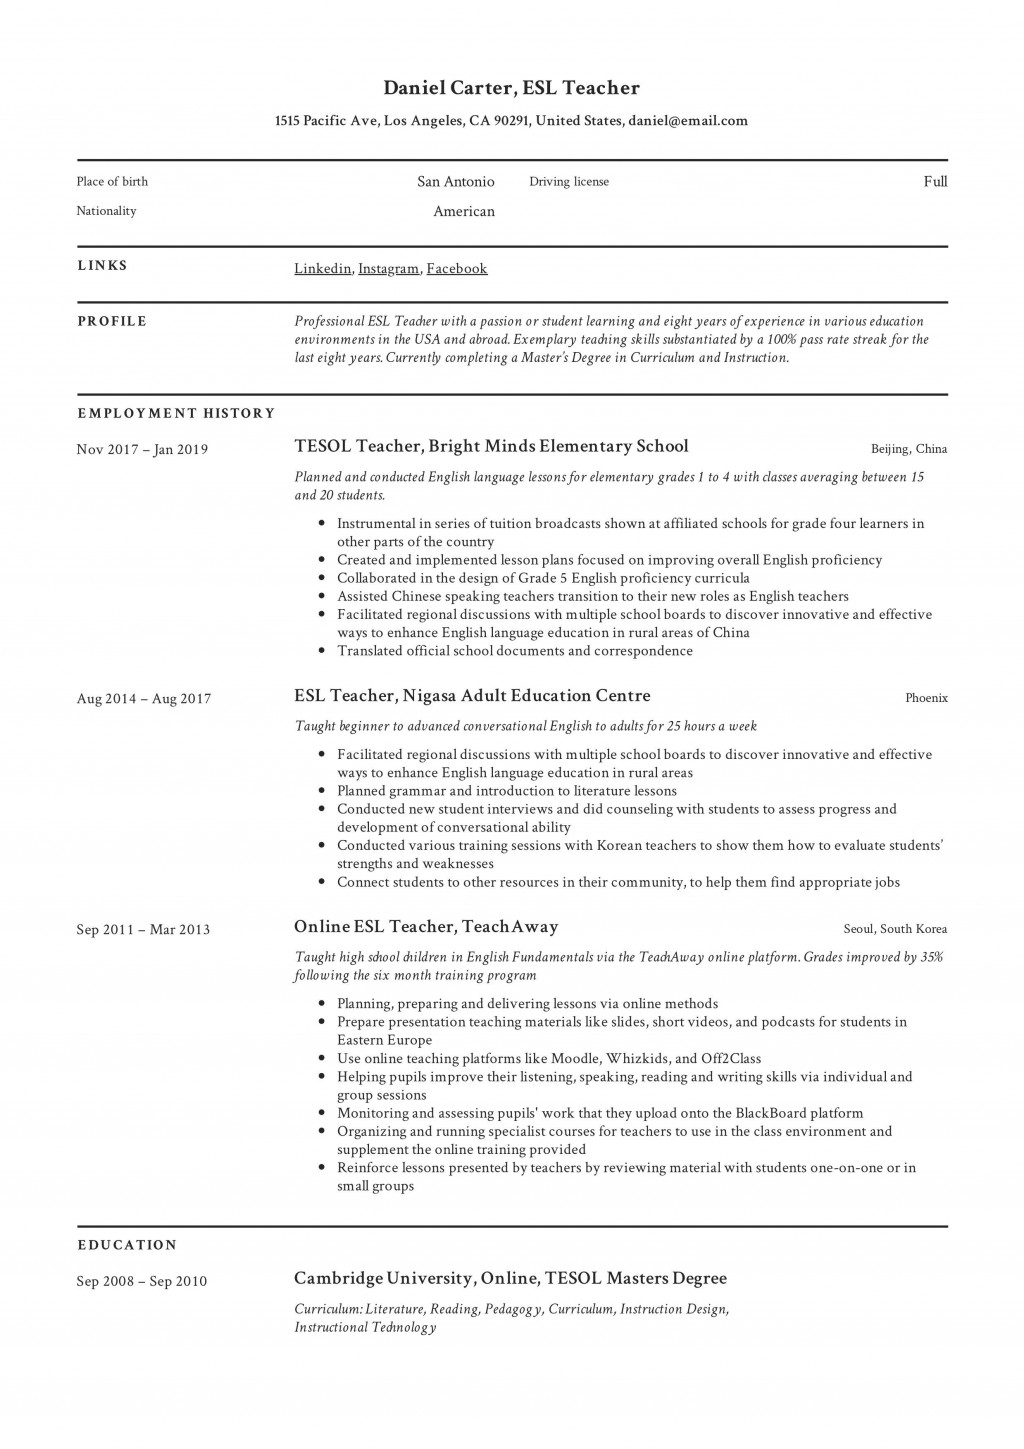 004 Dreaded Good Resume For Teaching Job Image  Sample Teacher Fresher In IndiaLarge